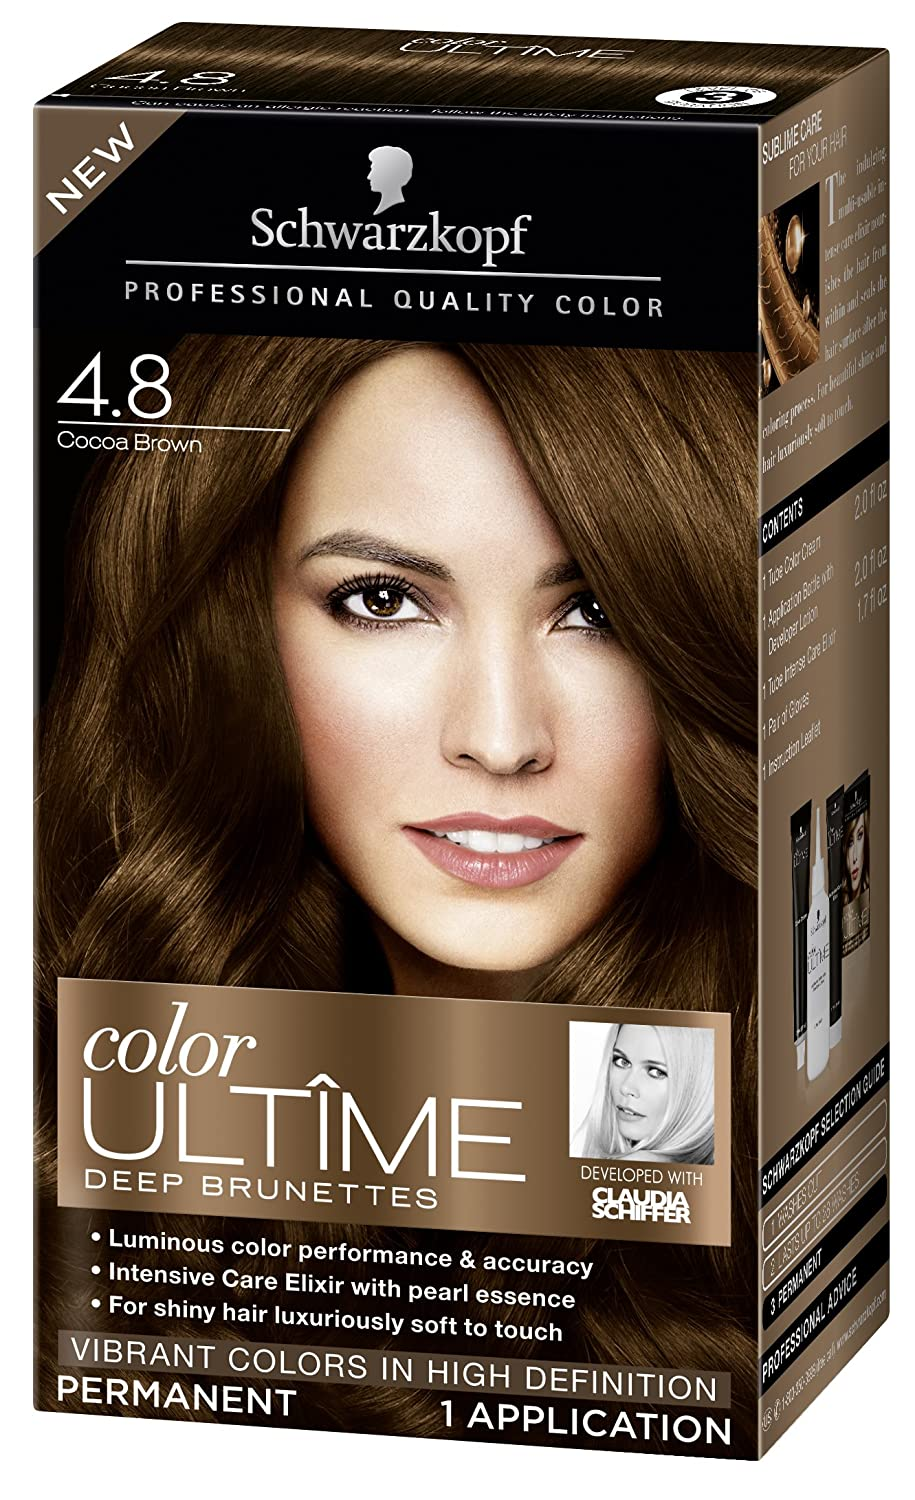 Cocoa Brown 48 Ultime Hair Color Schwarzkopf Ultime Hair Color